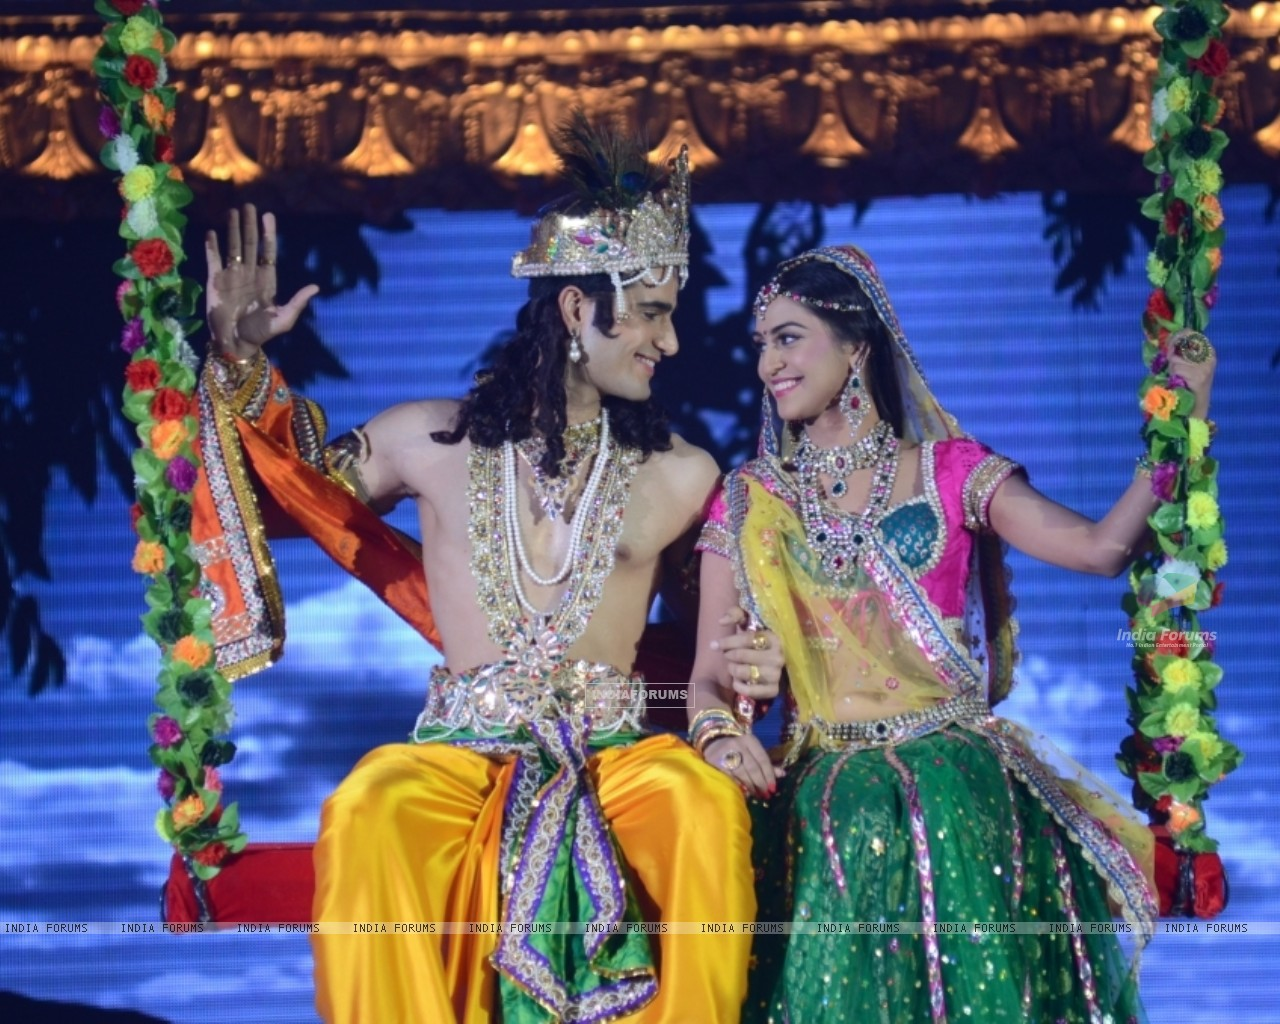 Jivika and Viren http://www.india-forums.com/wallpaper/1280x1024/235823-viren-and-jeevika-playing-radha-and-krishna-at-the-legend-of-di.htm